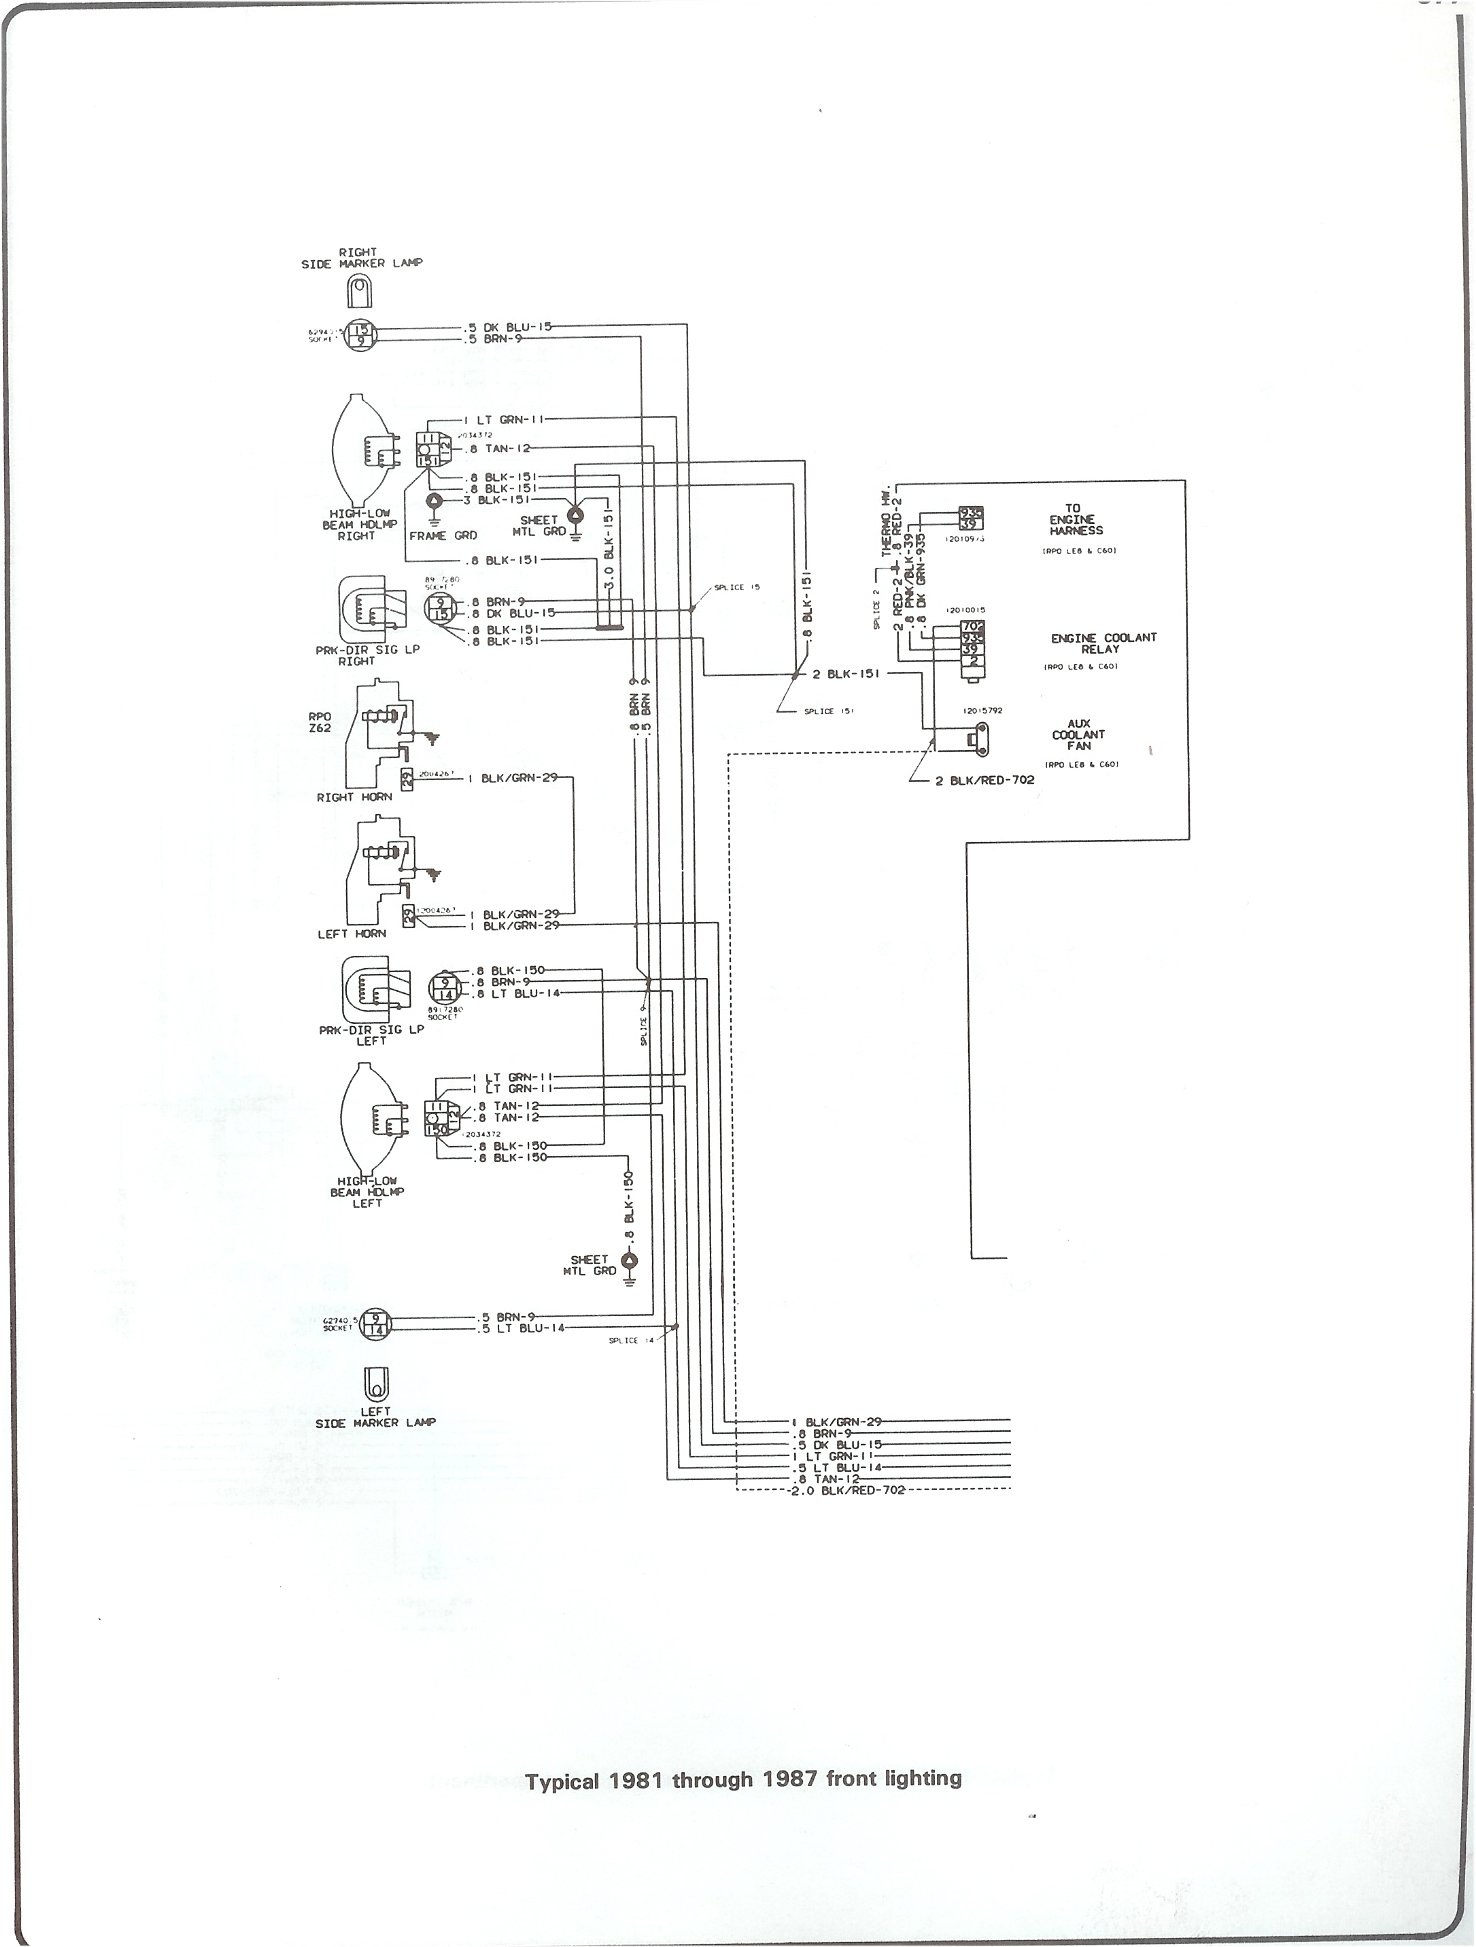 81 87_frt_light complete 73 87 wiring diagrams 1991 chevy silverado tail light wiring diagram at alyssarenee.co